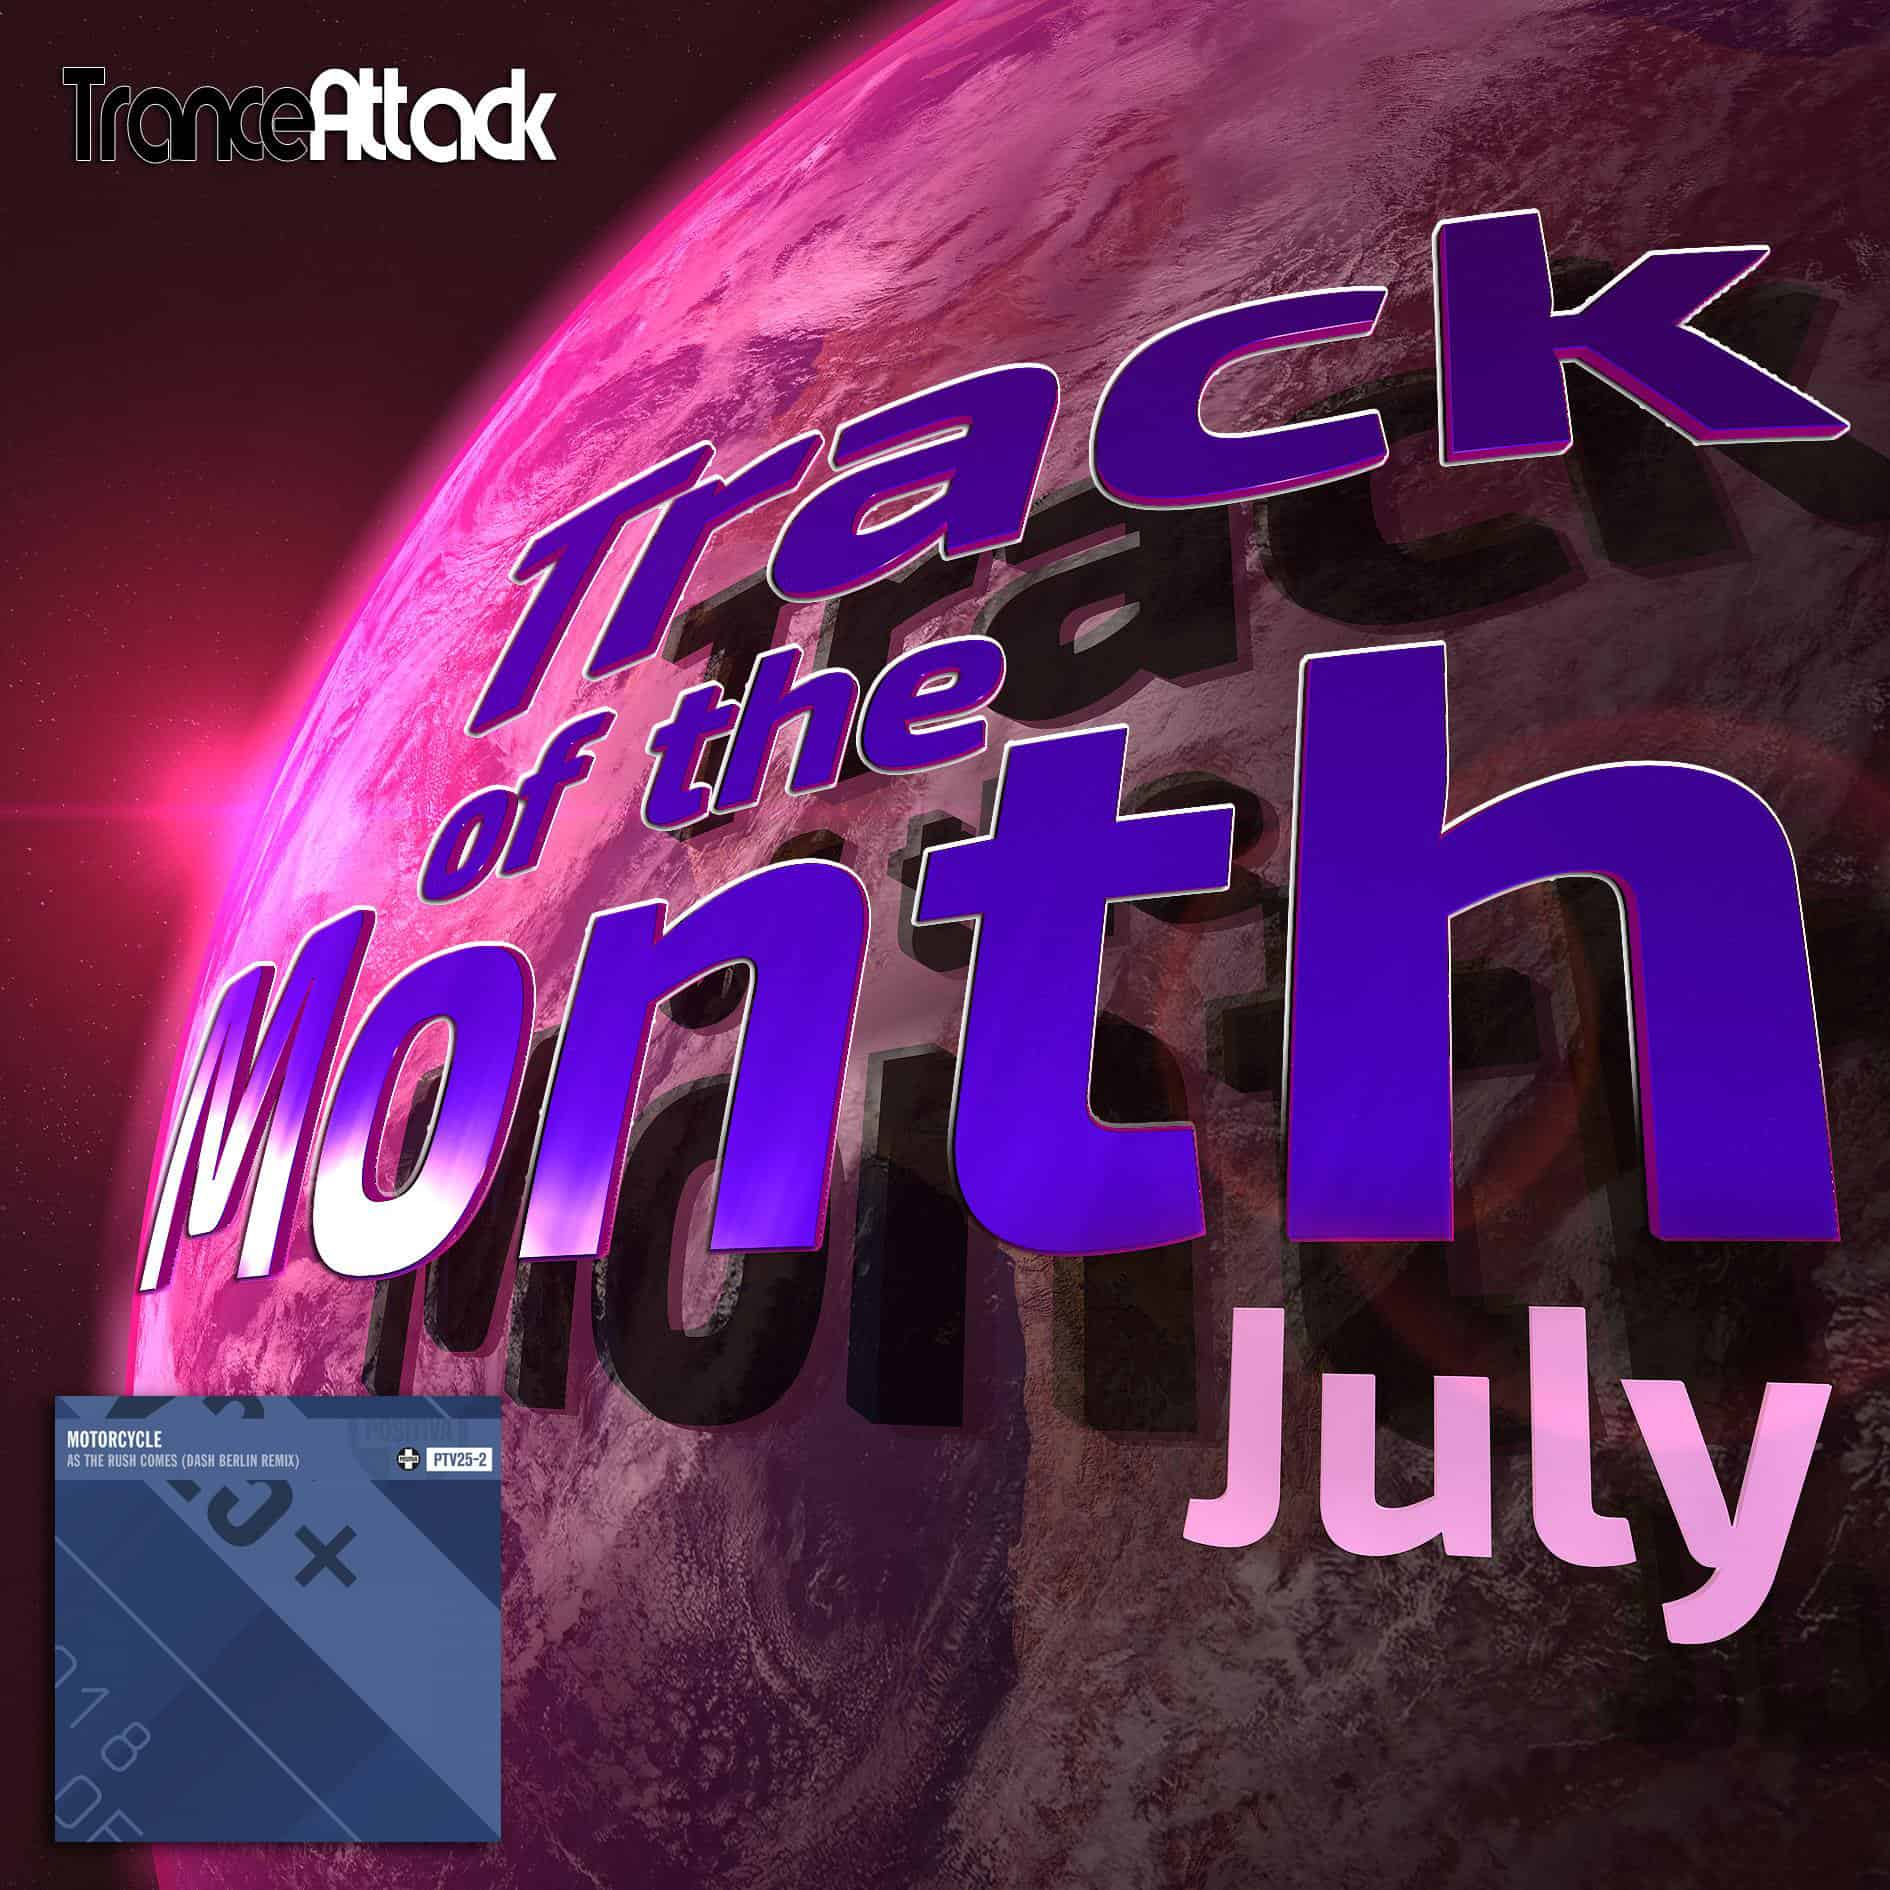 Track Of The Month July 2018: Motorcycle – As The Rush Comes (Dash Berlin Remix)